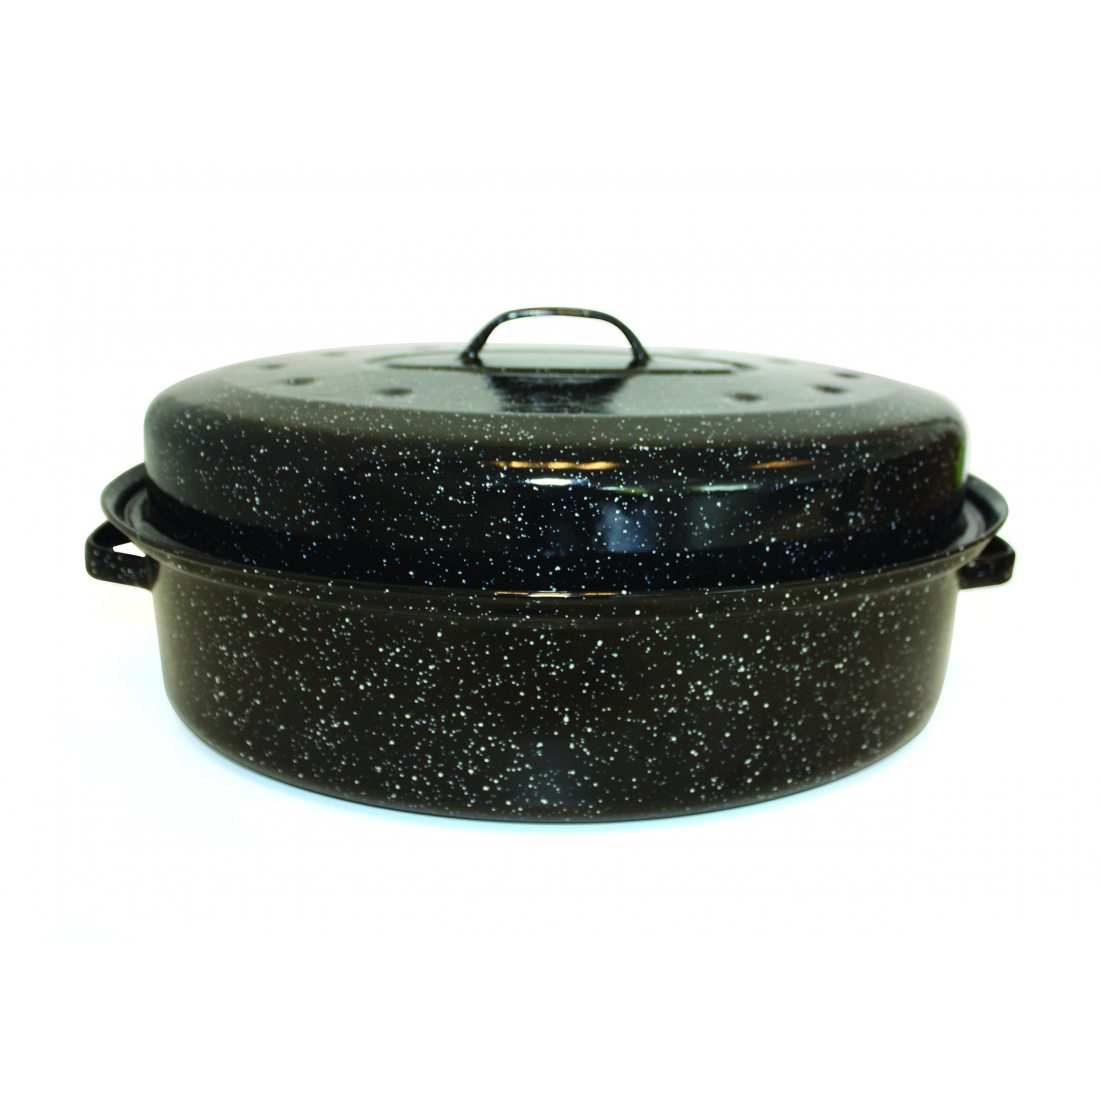 Beka 14730344 Kitchen Roc Roasty Cook Couvercle Émail Noir 39 x 26 x 9 cm